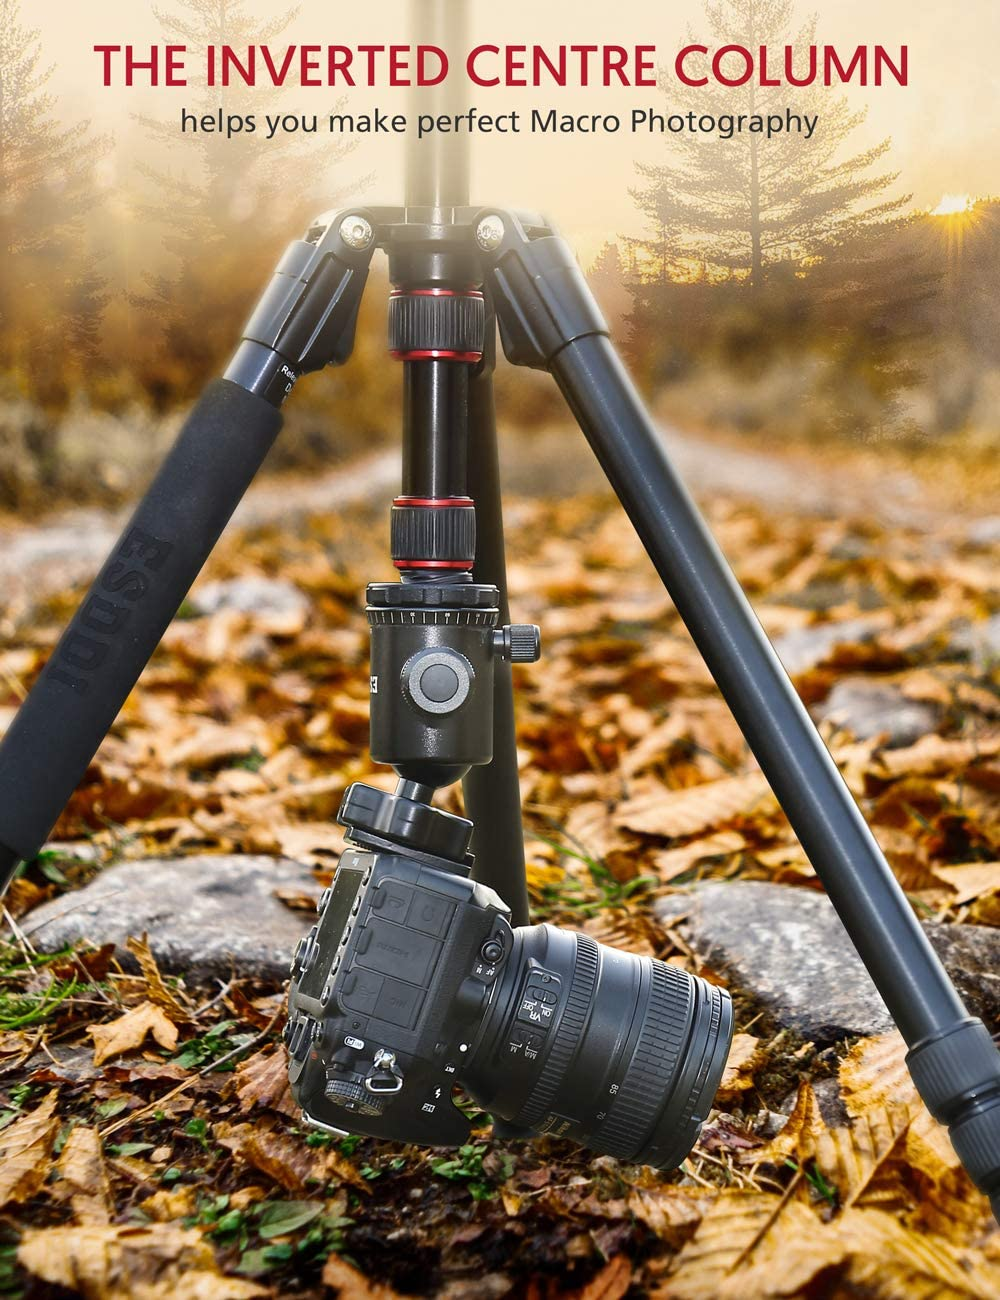 Nikon Ultra Compact and Stable for Travel and Work ESDDI Camera Tripod 79 inches Aluminum Tripod for Camera with 360/° Panorama Ball Head and Monopod Tripod for Canon DSLR Sony 17.6 Lbs Load